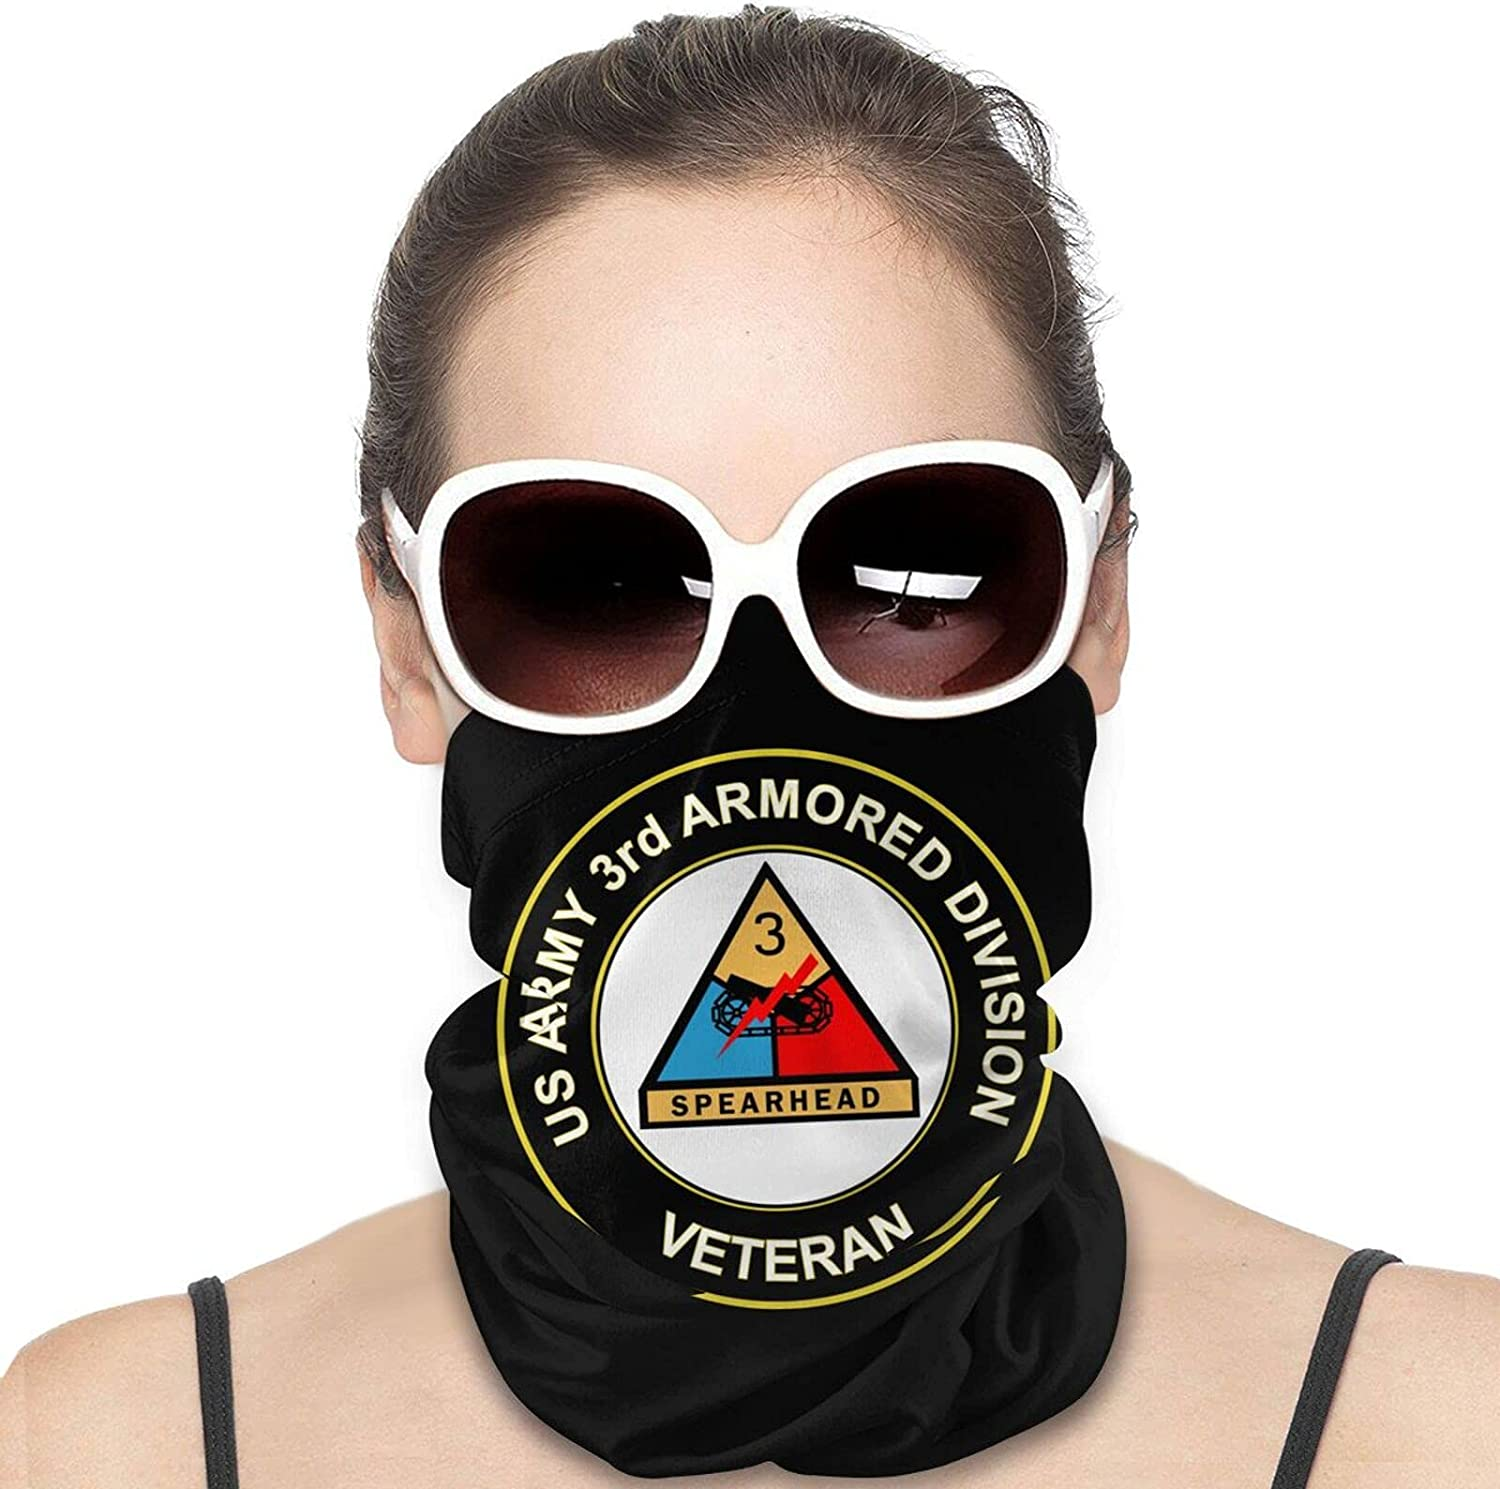 U.S. Army Veteran 3rd Armored Division Round Neck Gaiter Bandnas Face Cover Uv Protection Prevent bask in Ice Scarf Headbands Perfect for Motorcycle Cycling Running Festival Raves Outdoors